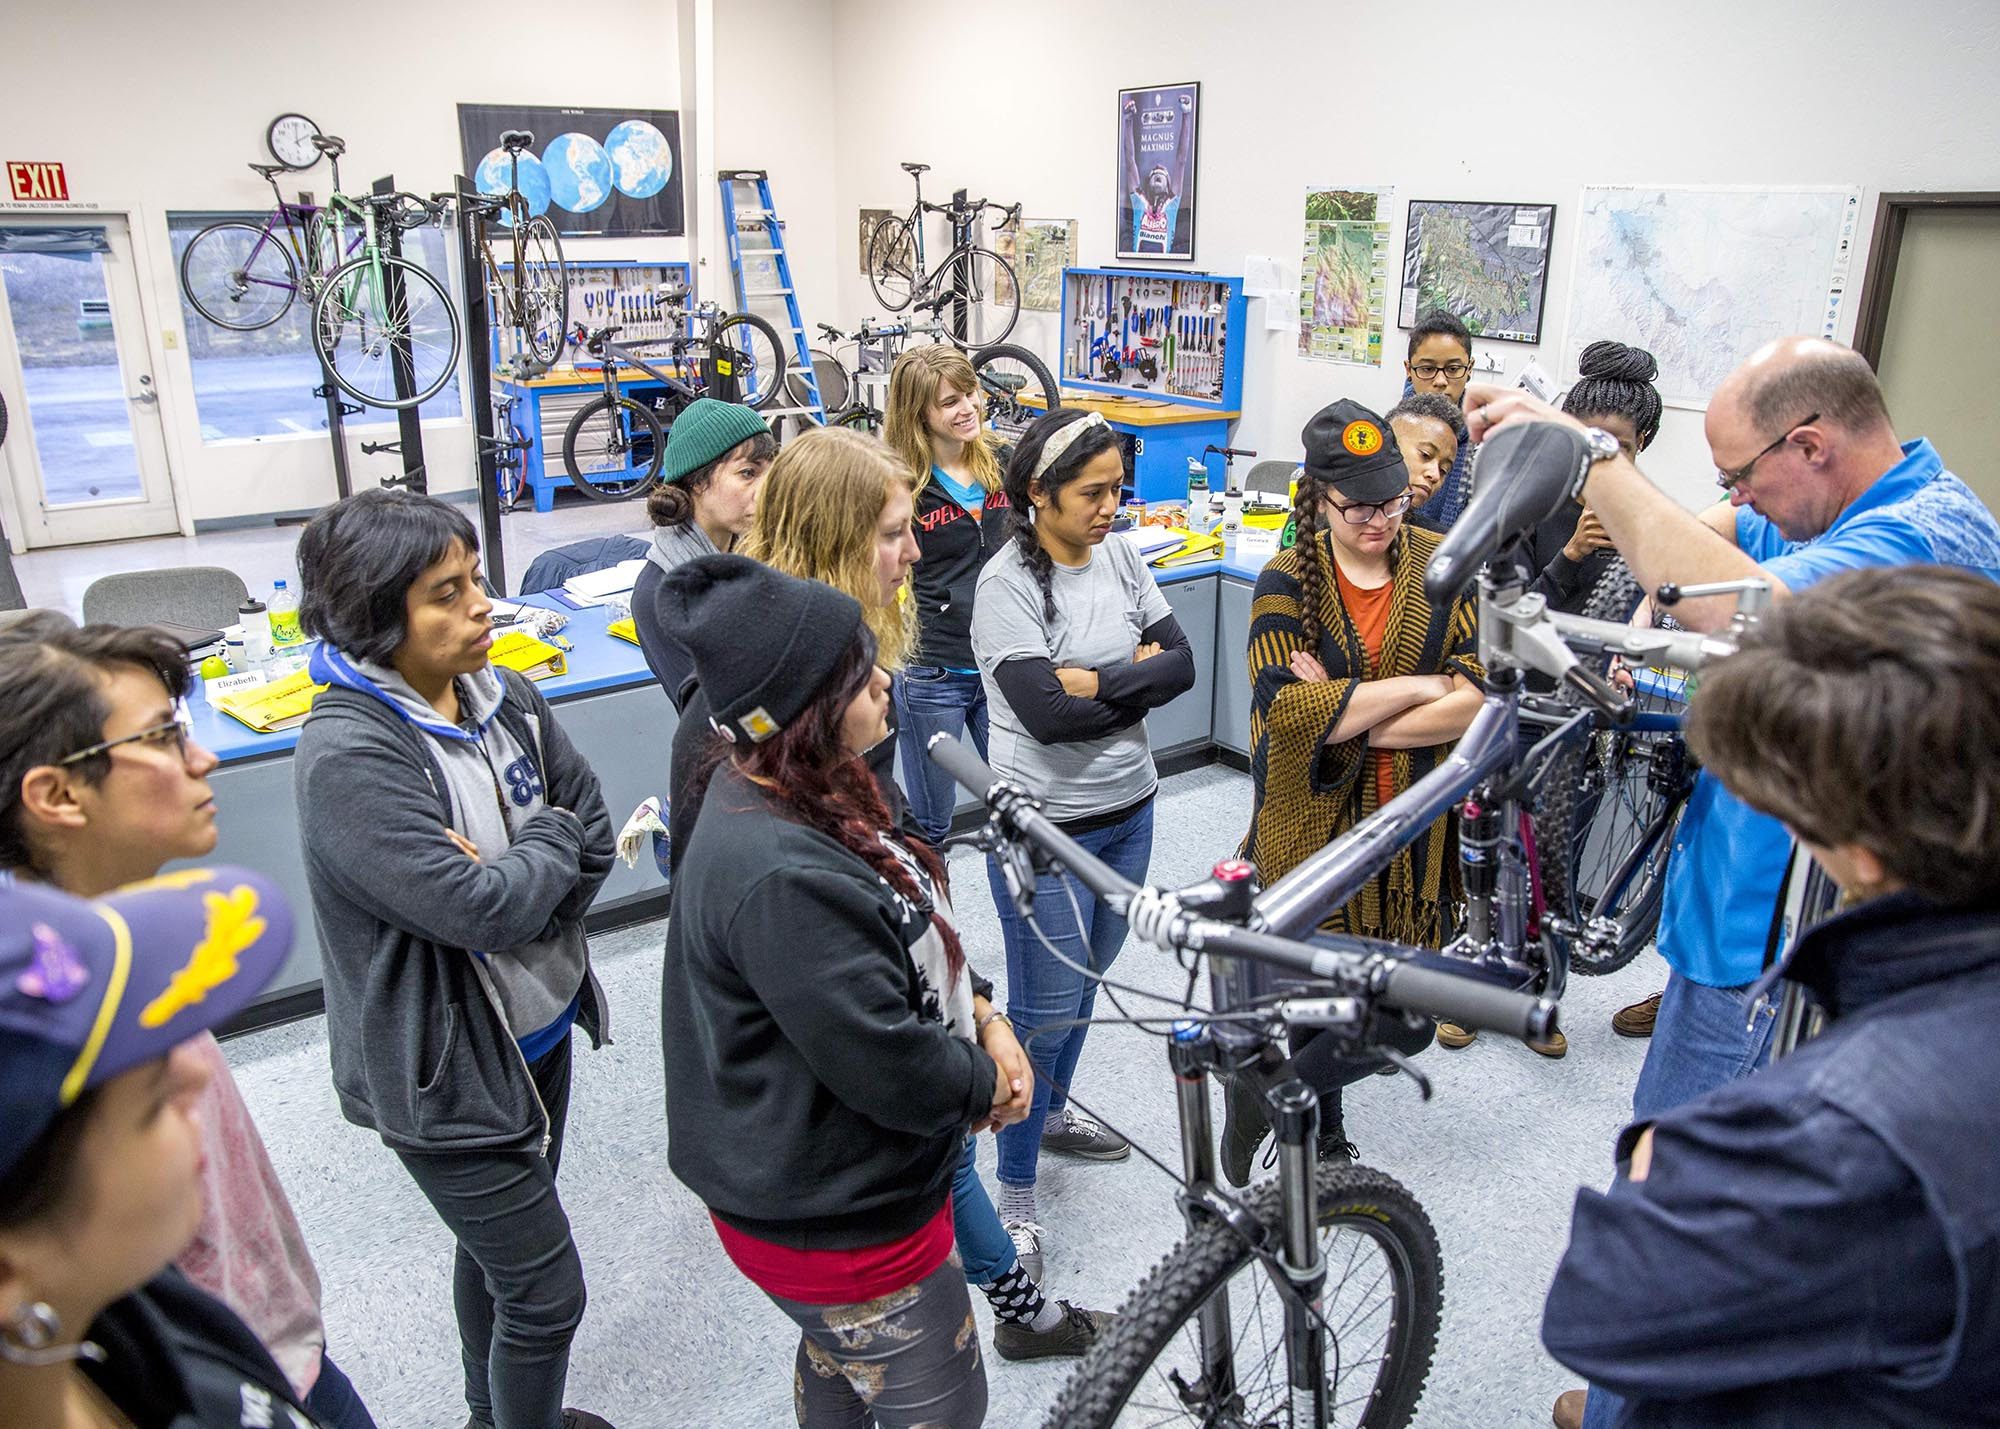 In 2014, QBP creates a Women's Bike Mechanic Scholarship, which covers lodging and tuition at UBI's two-week Professional Shop Repair and Operations class. Upon completion of the course, recipients also receive a stipend to help defray personal expenses.